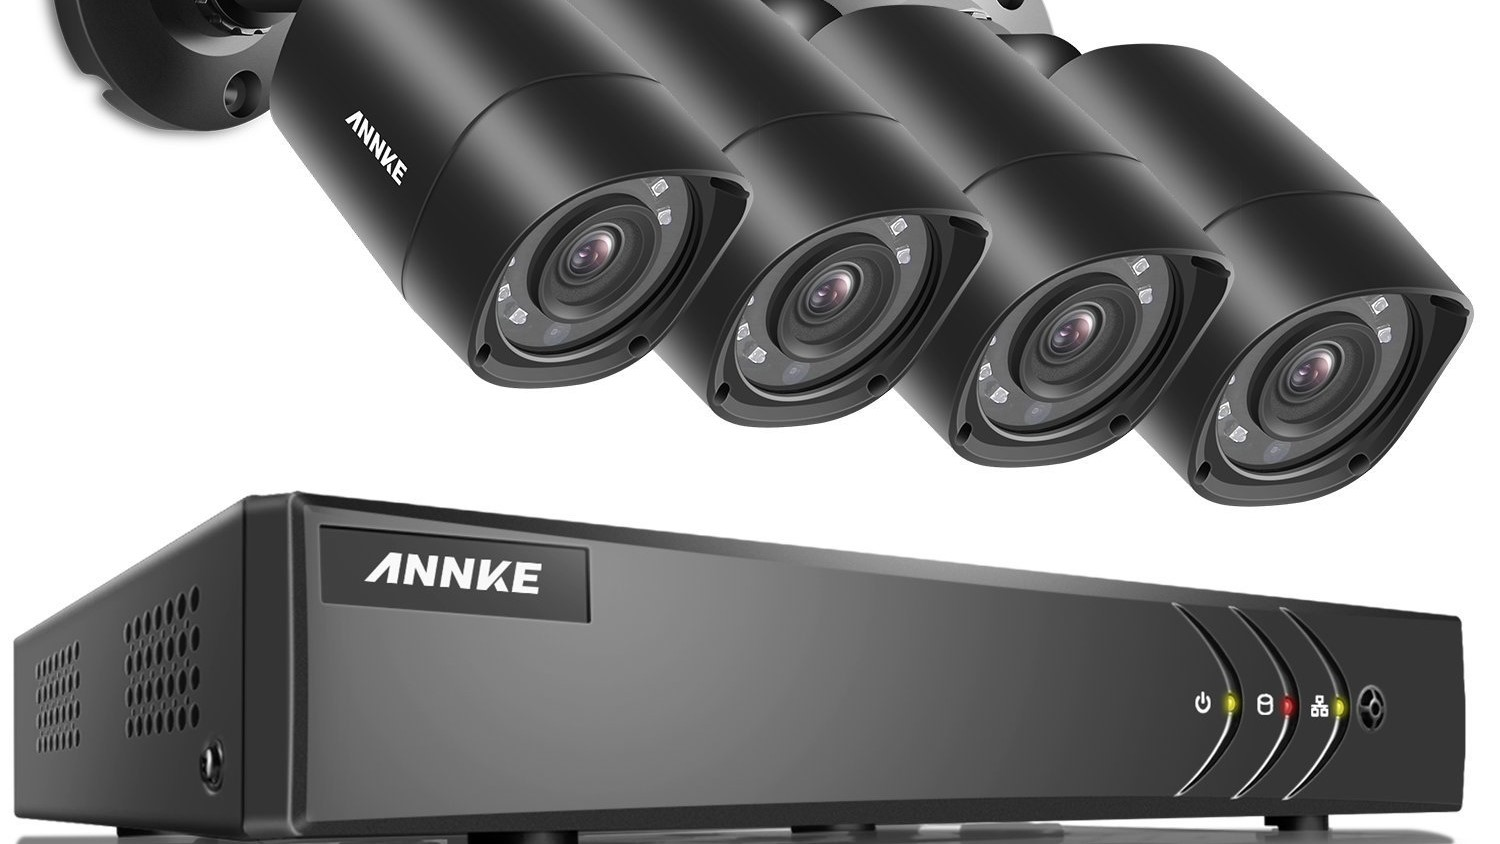 Sponsored Deal Annke 8 Channel Security Camera System W 4 Weatherproof Night Vision Cameras Is 78 09